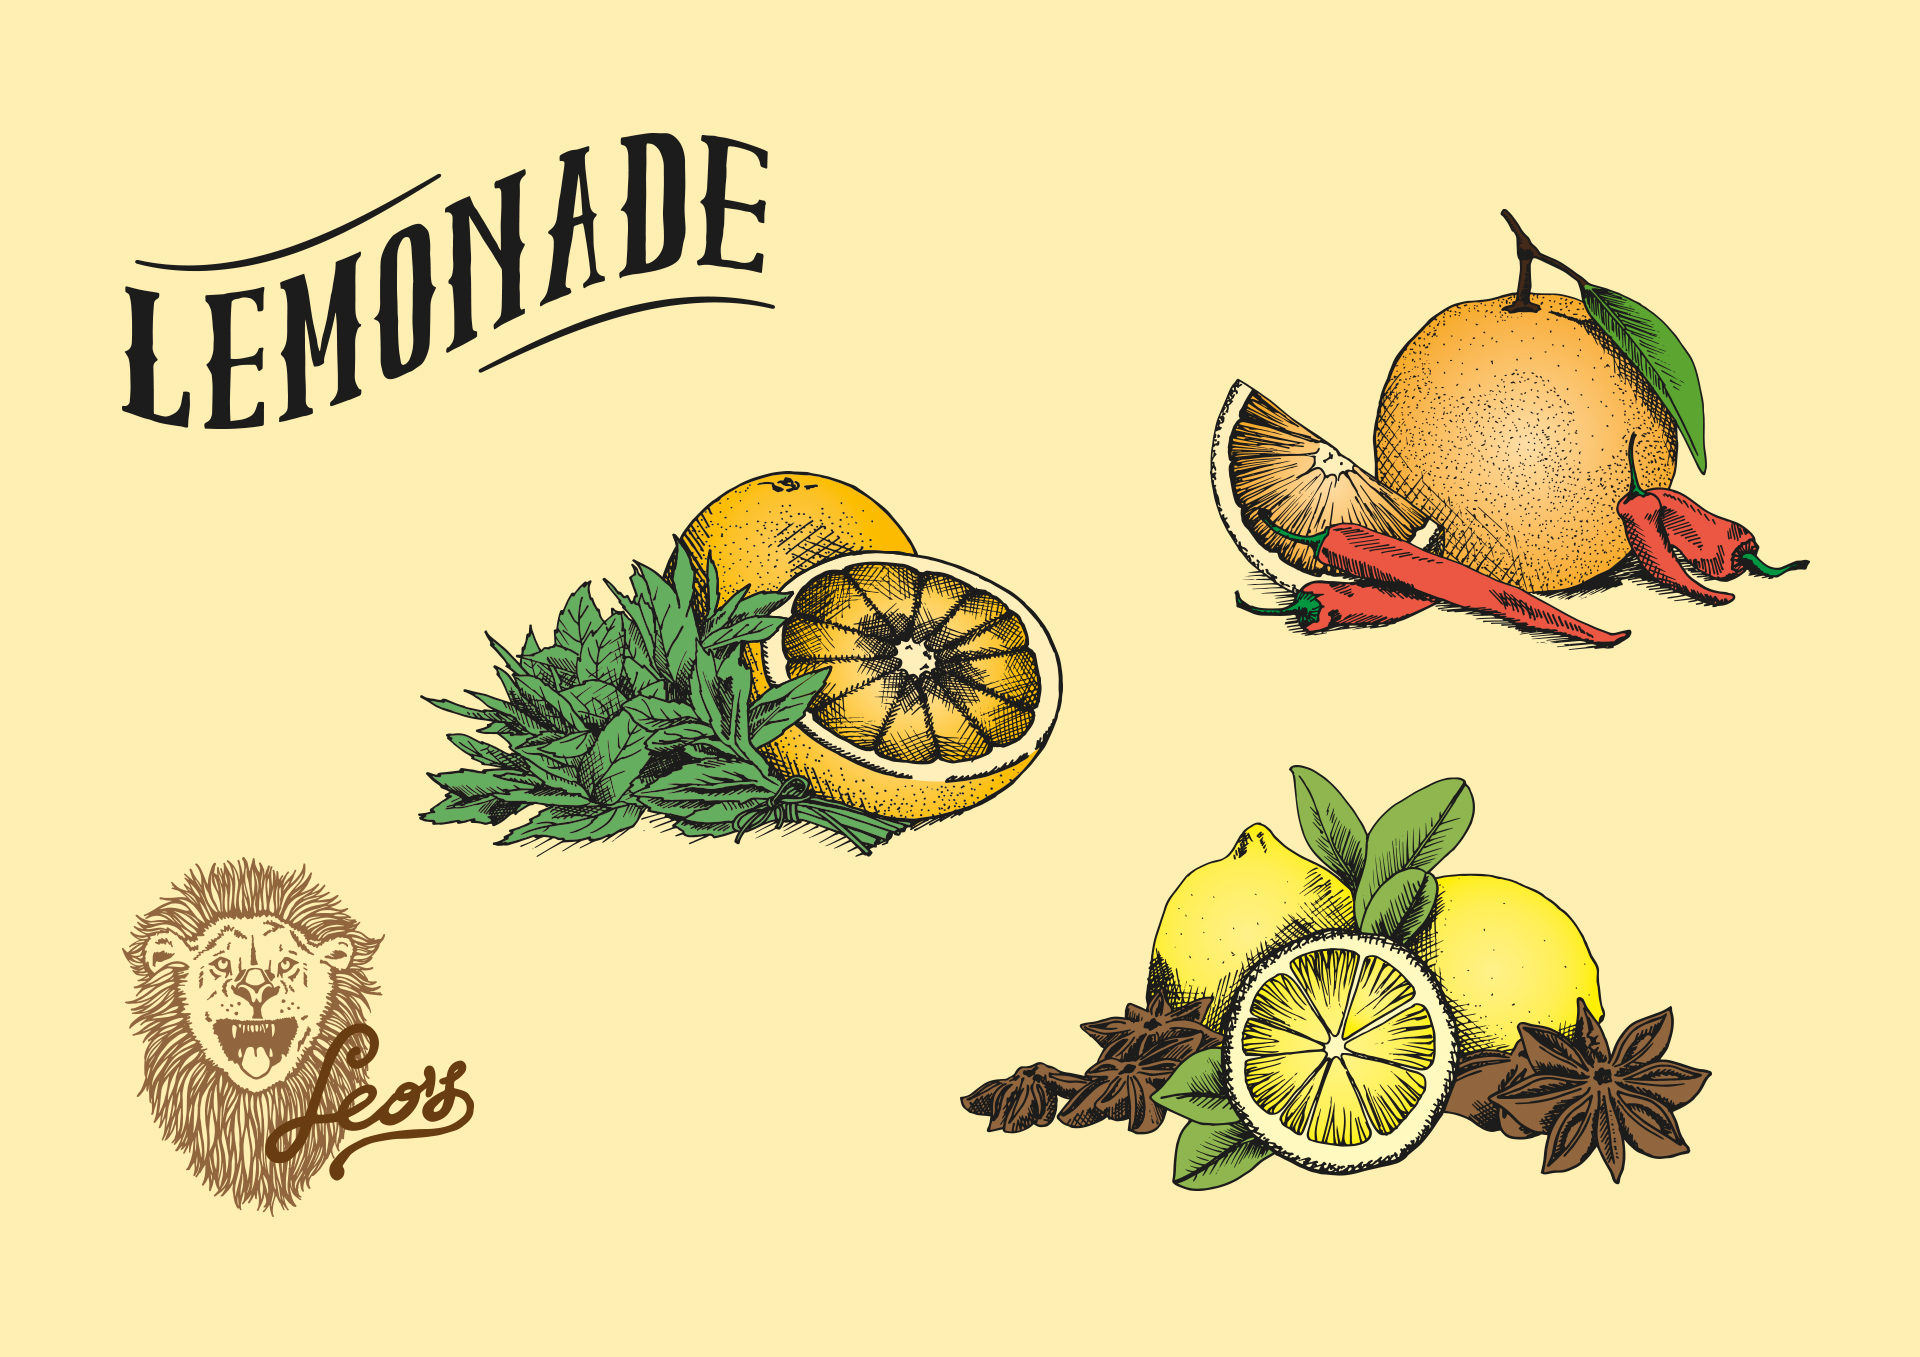 Barabicu_Lemonade_2_Case_Image_1920x1357